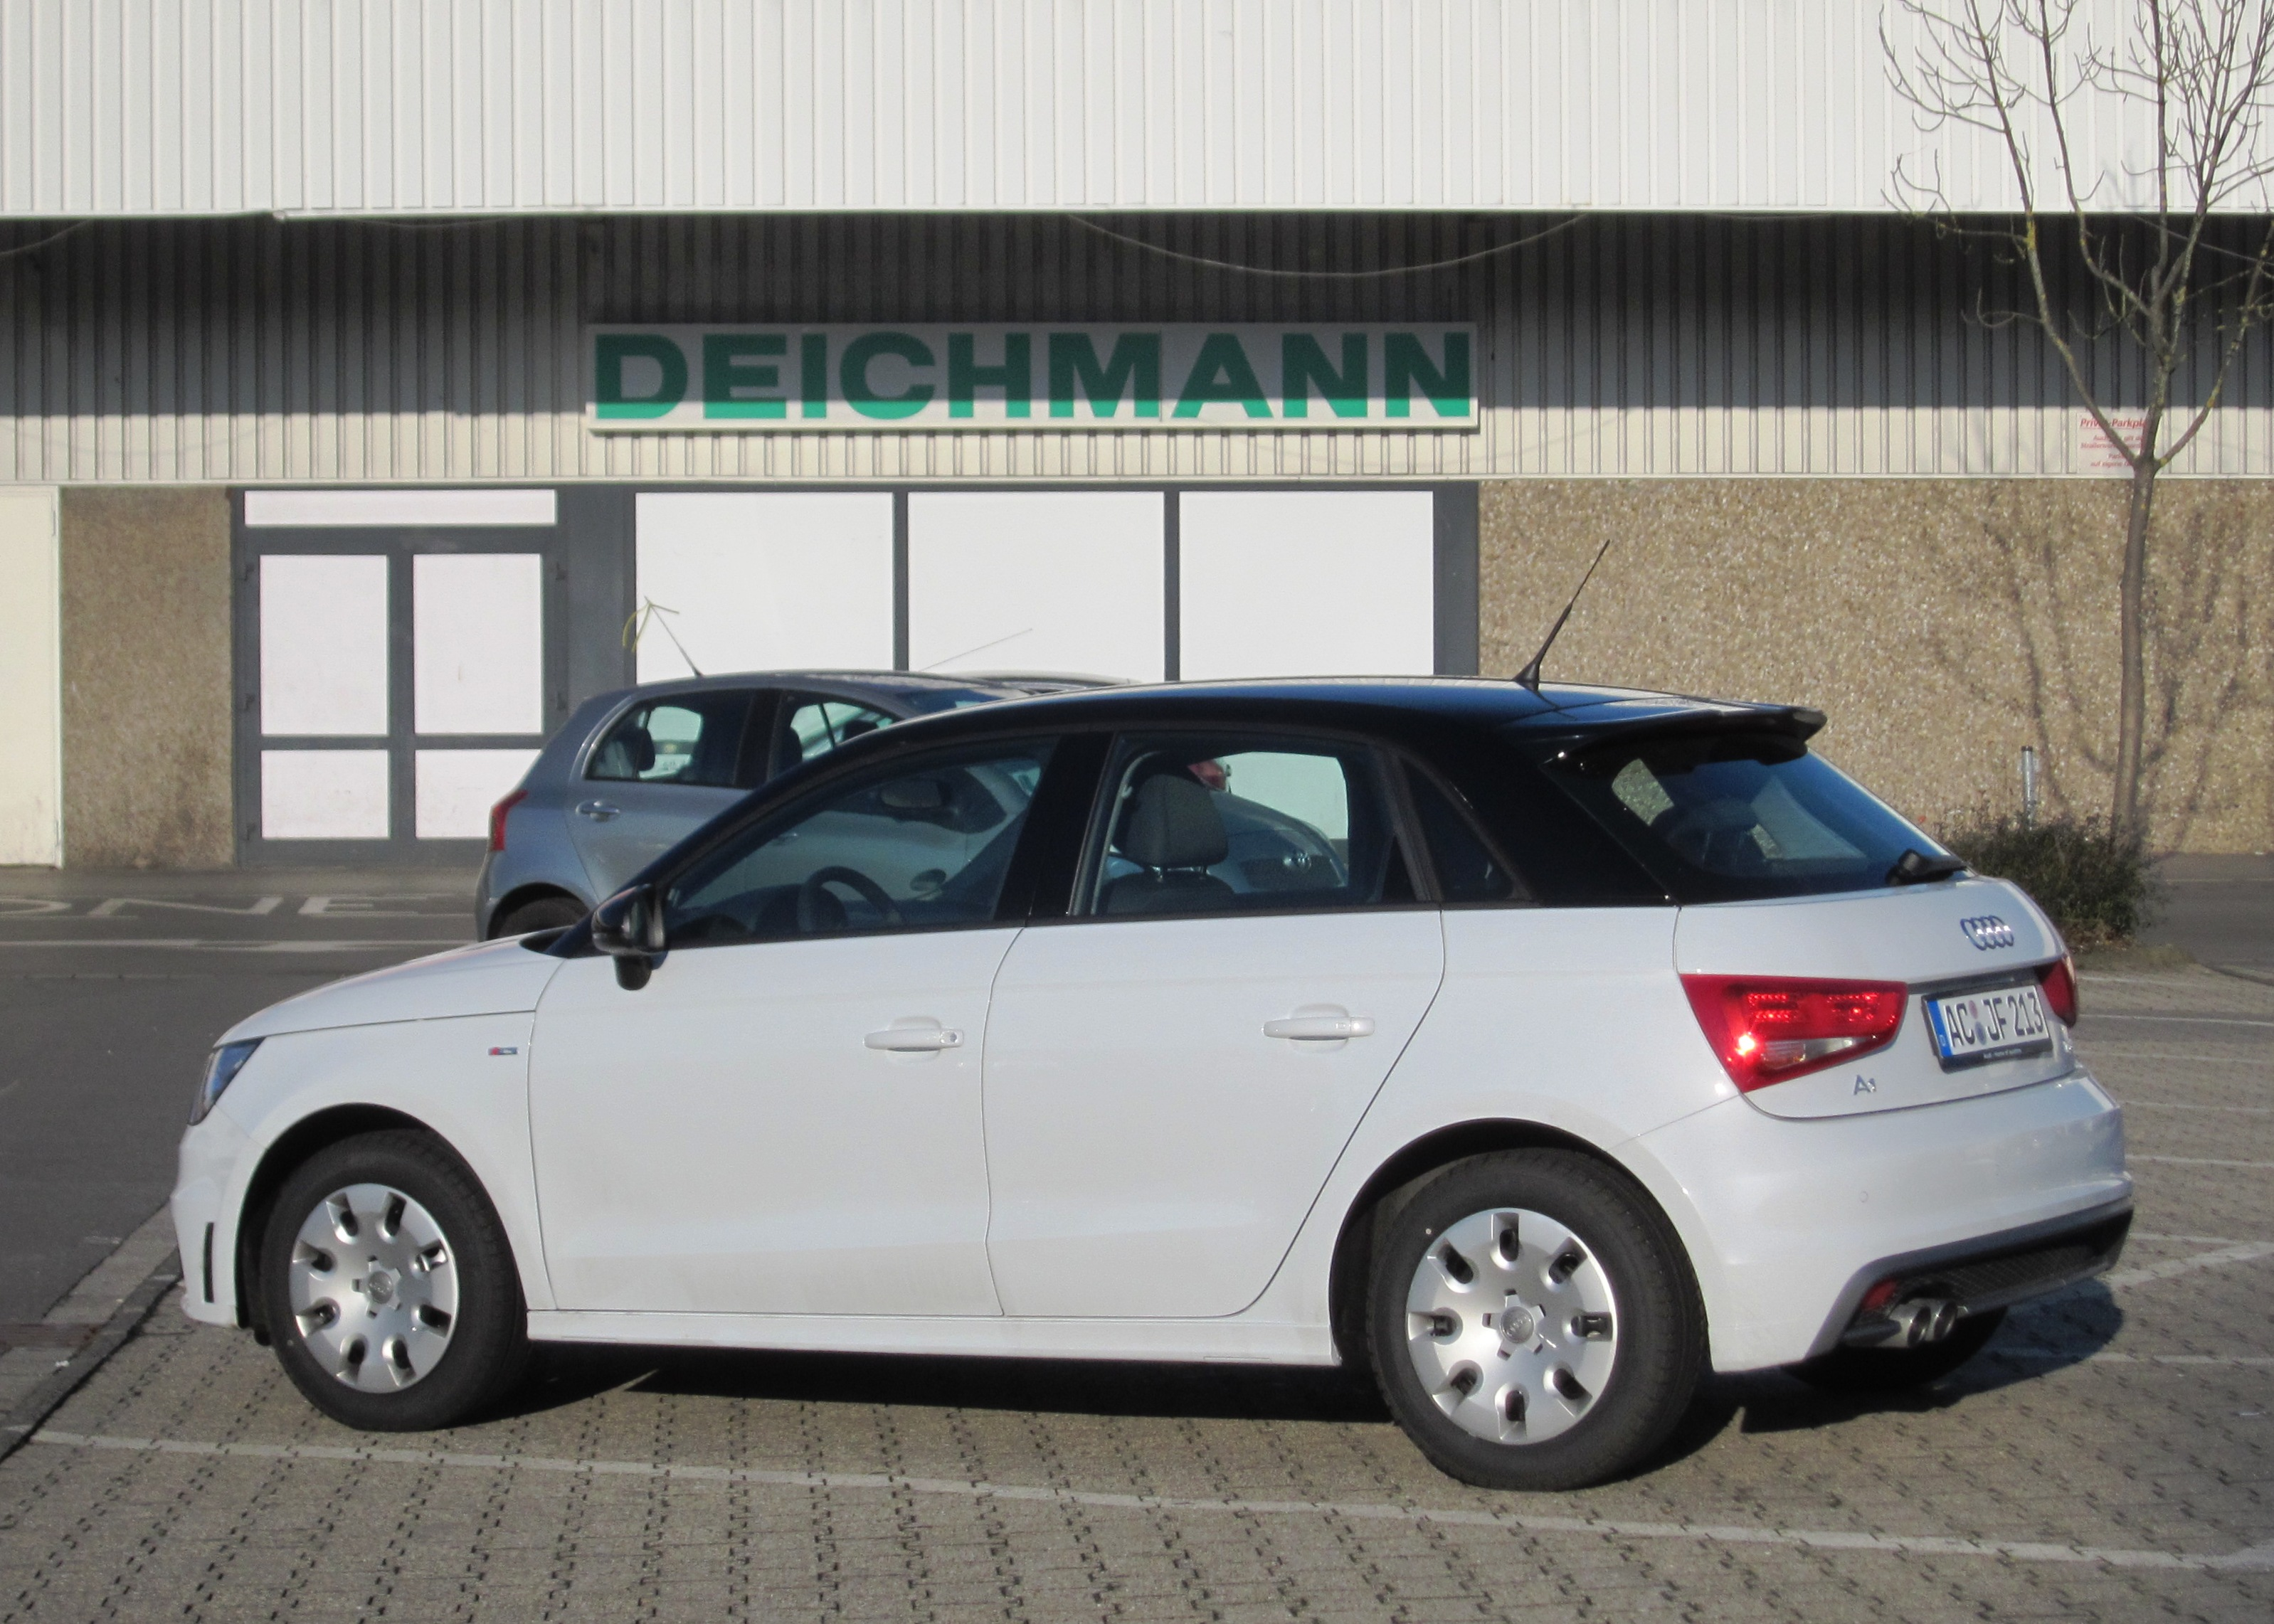 FileAudi A1 5-door buys low priced shoes 2014.JPG & File:Audi A1 5-door buys low priced shoes 2014.JPG - Wikimedia Commons